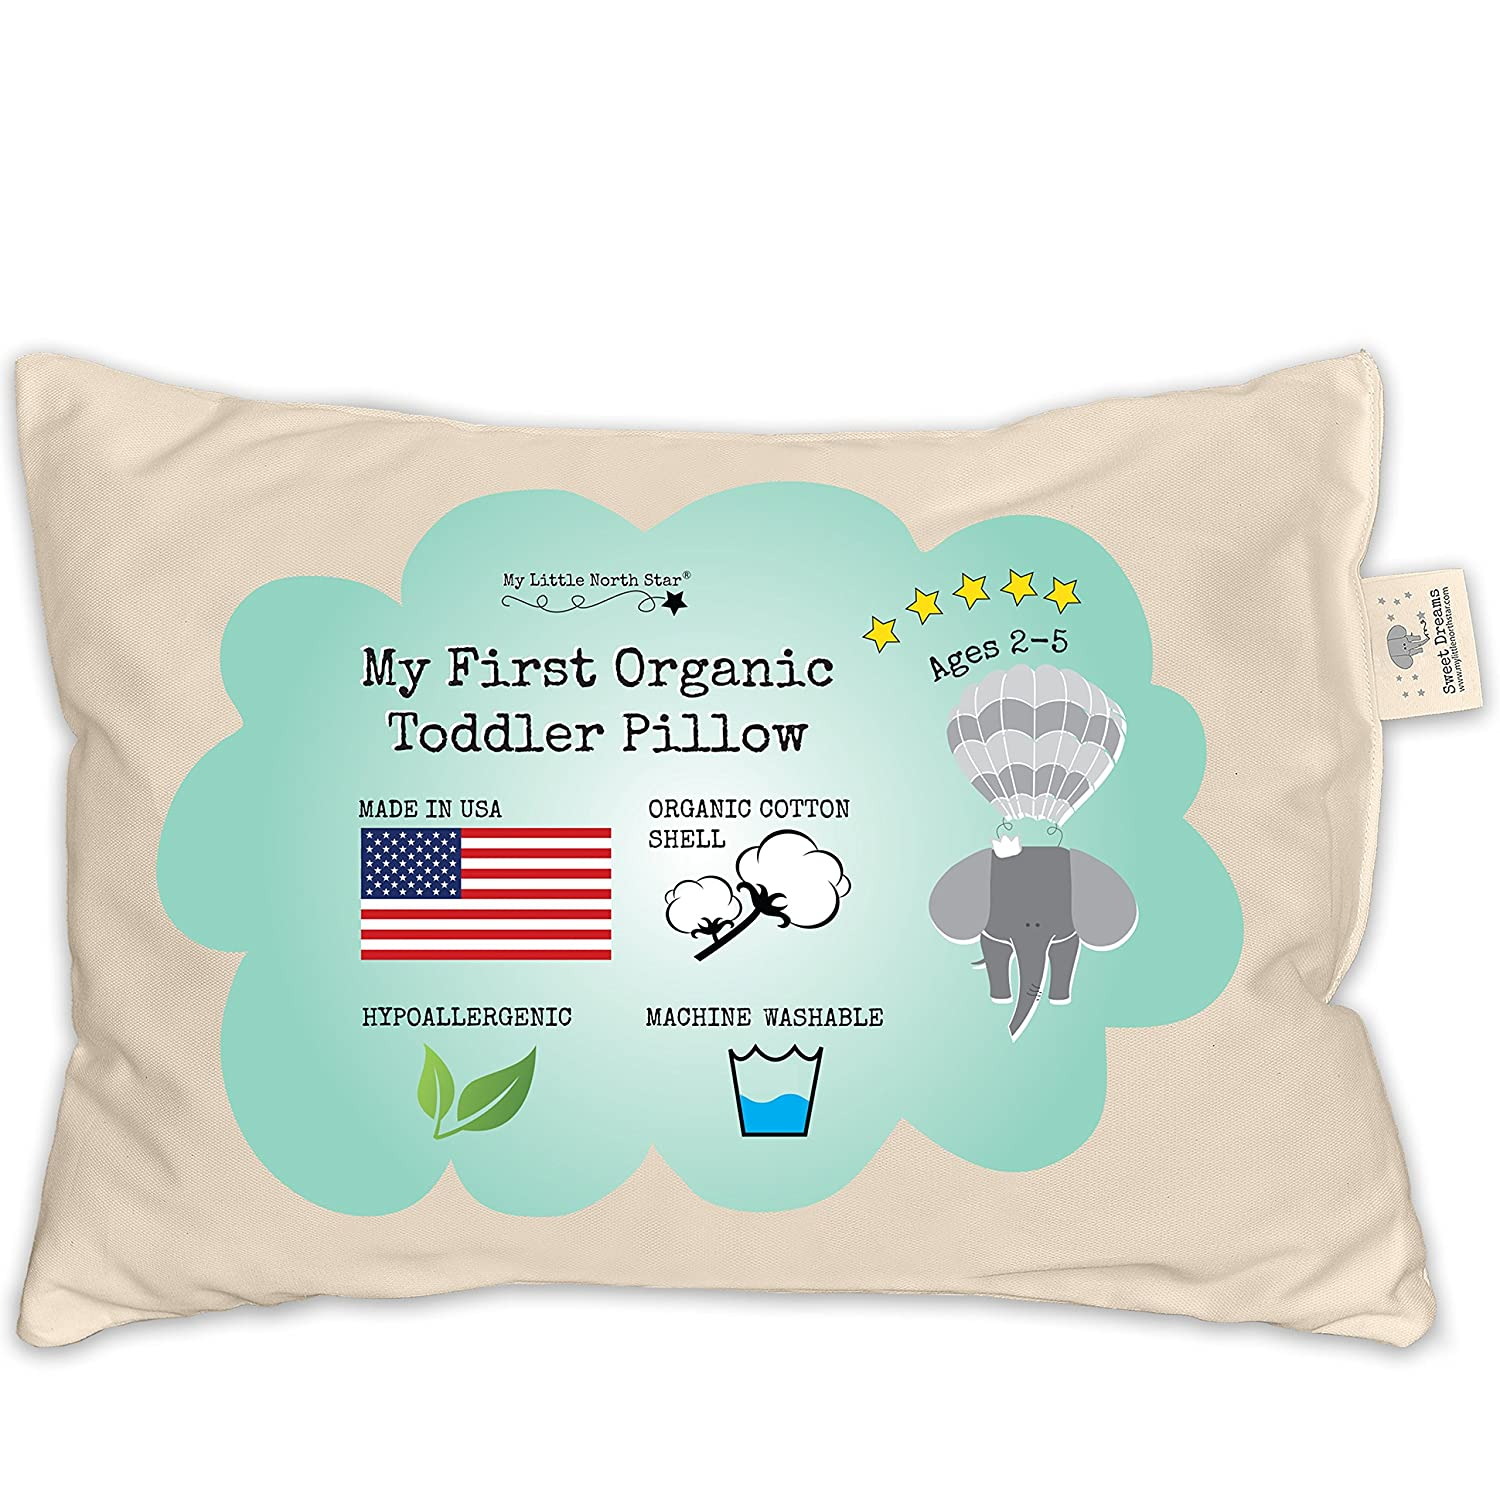 Organic Toddler Pillow Made in USA (13x18) and carrying bag